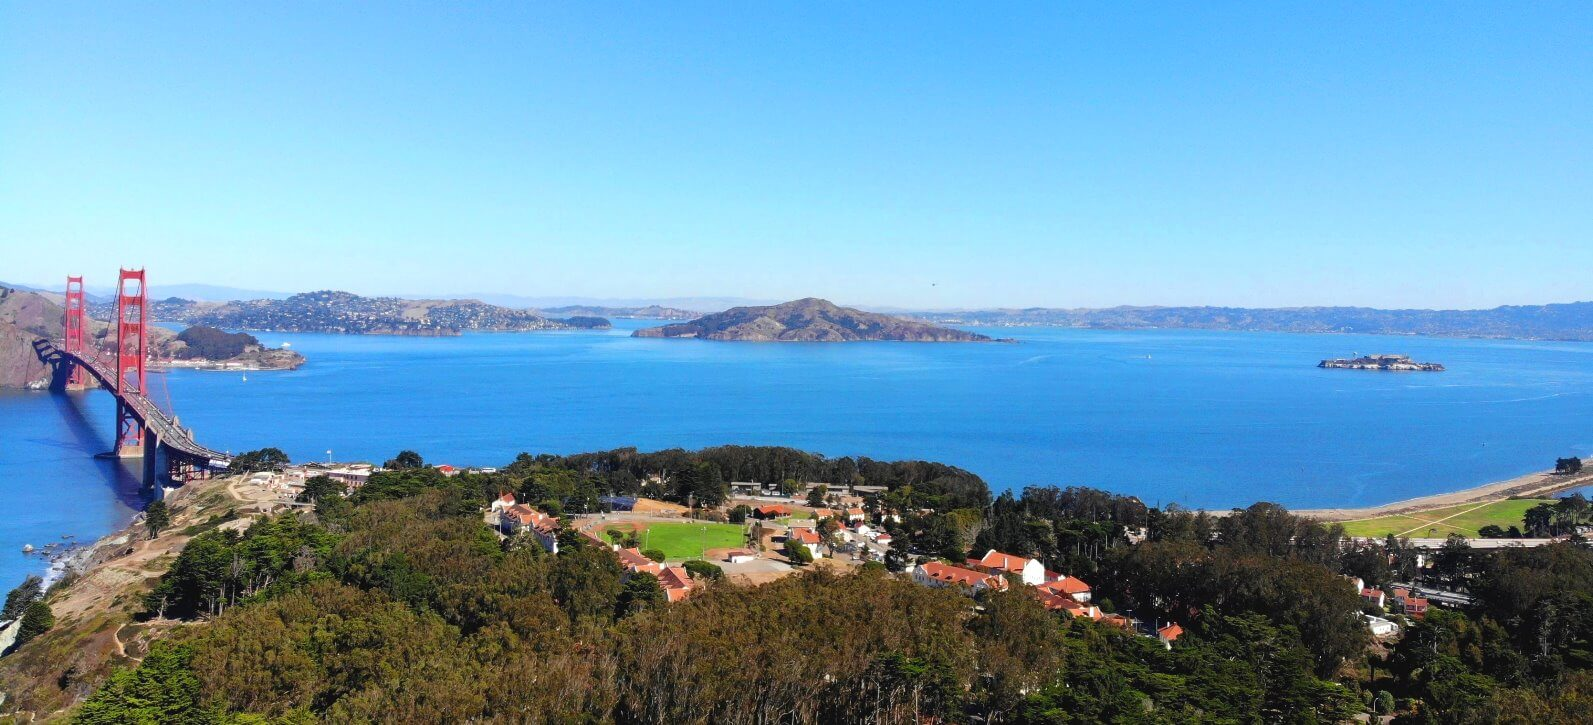 aerial-seaplane-air-tours-helicopter-over-alcatraz-island-and-golden-gate-bridge